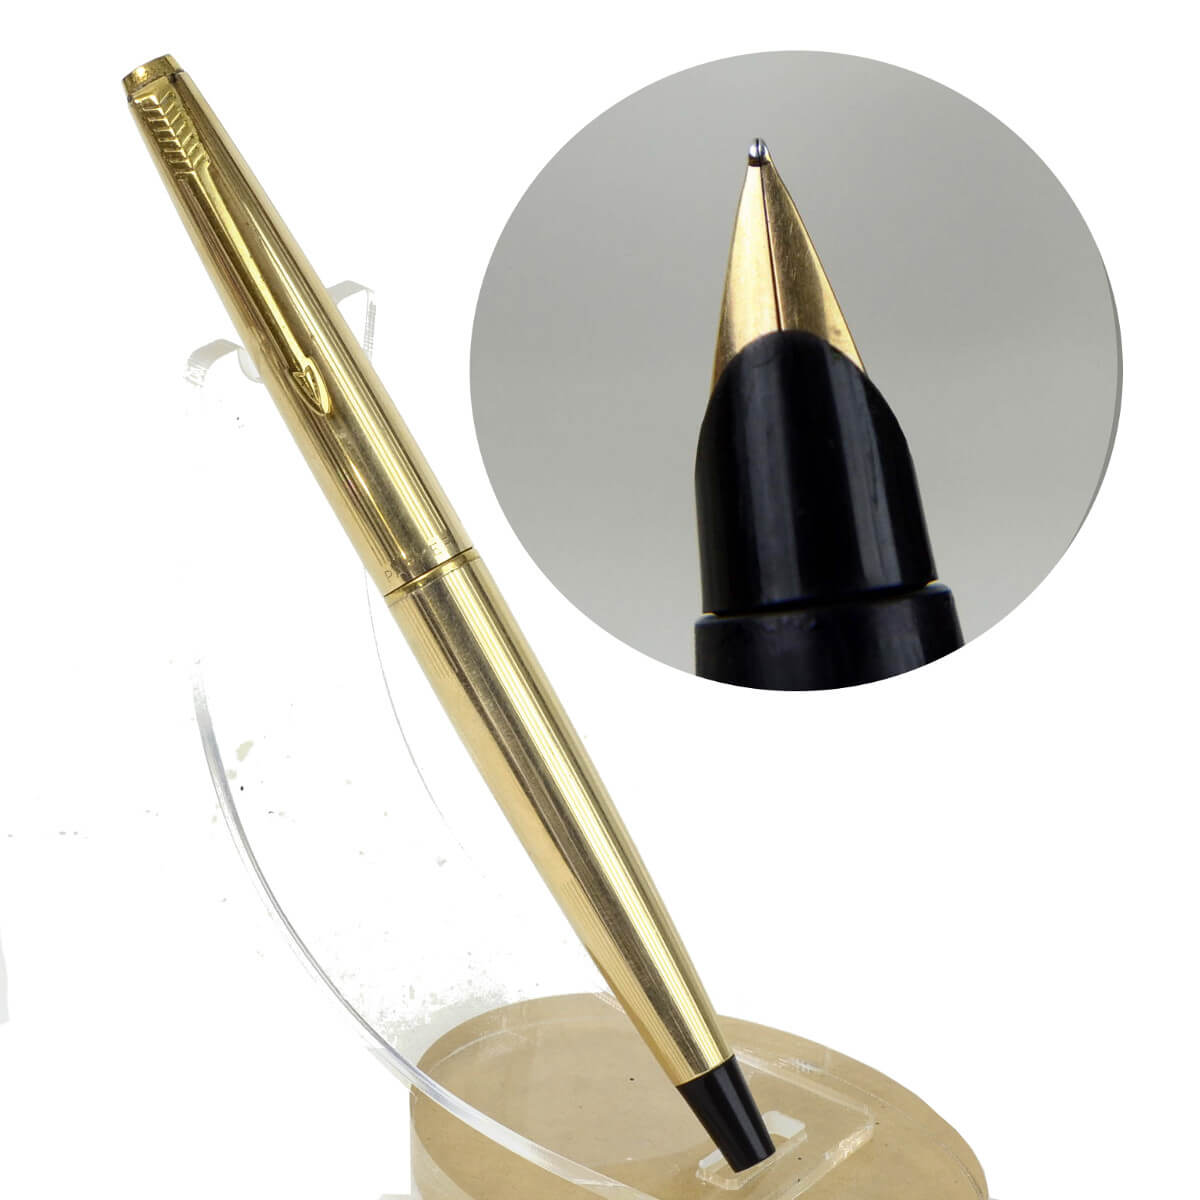 Parker 45 insignia 12K gold filled barrel fountain pen with